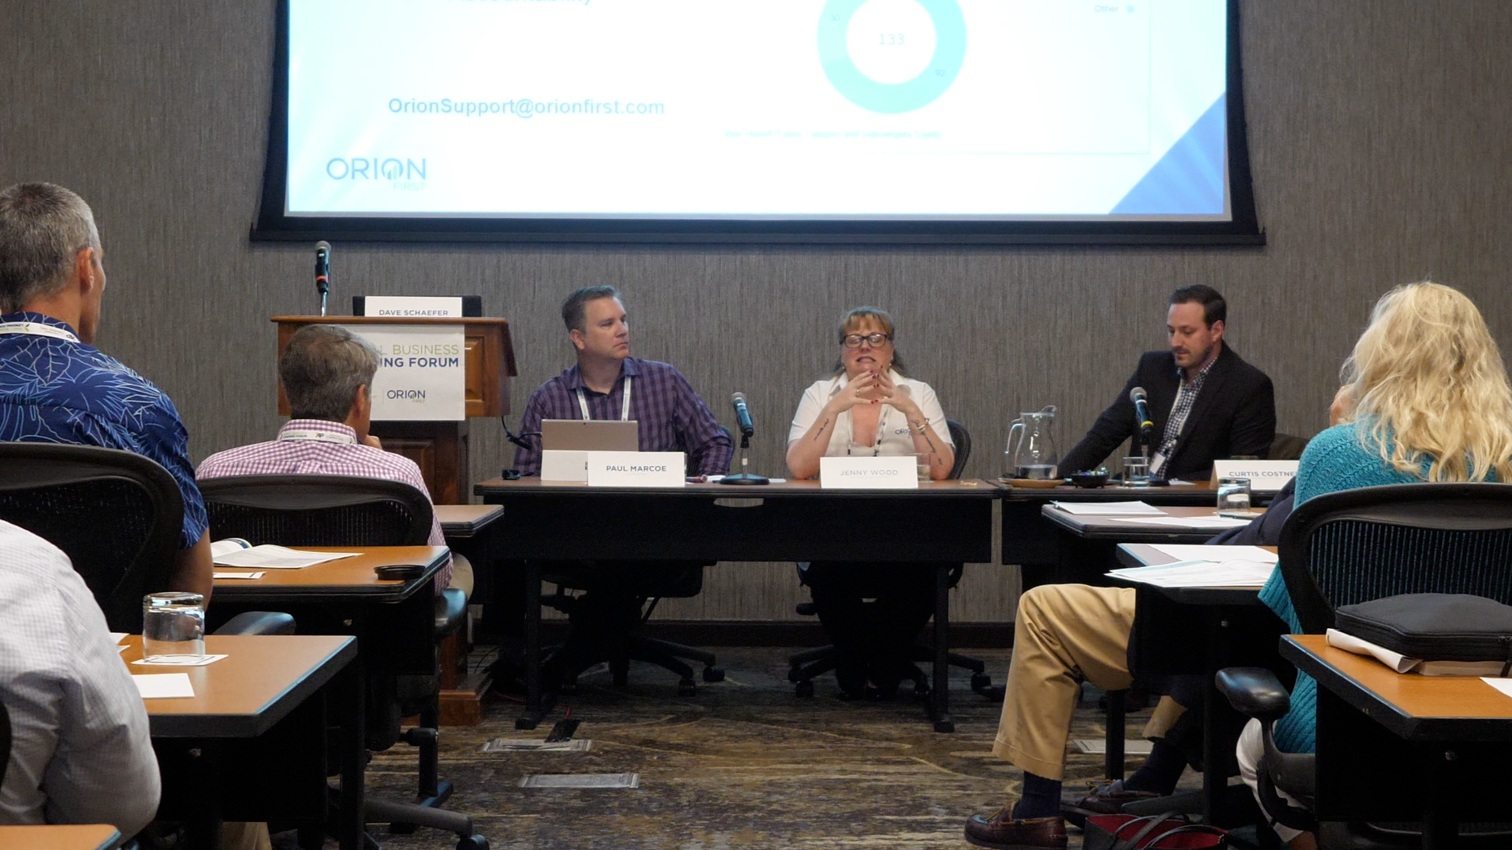 Panelists (L-R)   : Paul Marcoe, CTO, Orion First; Jenny Wood, SVP Client Services, Orion First; Curtis Costner, VP, Marketing, Orion First